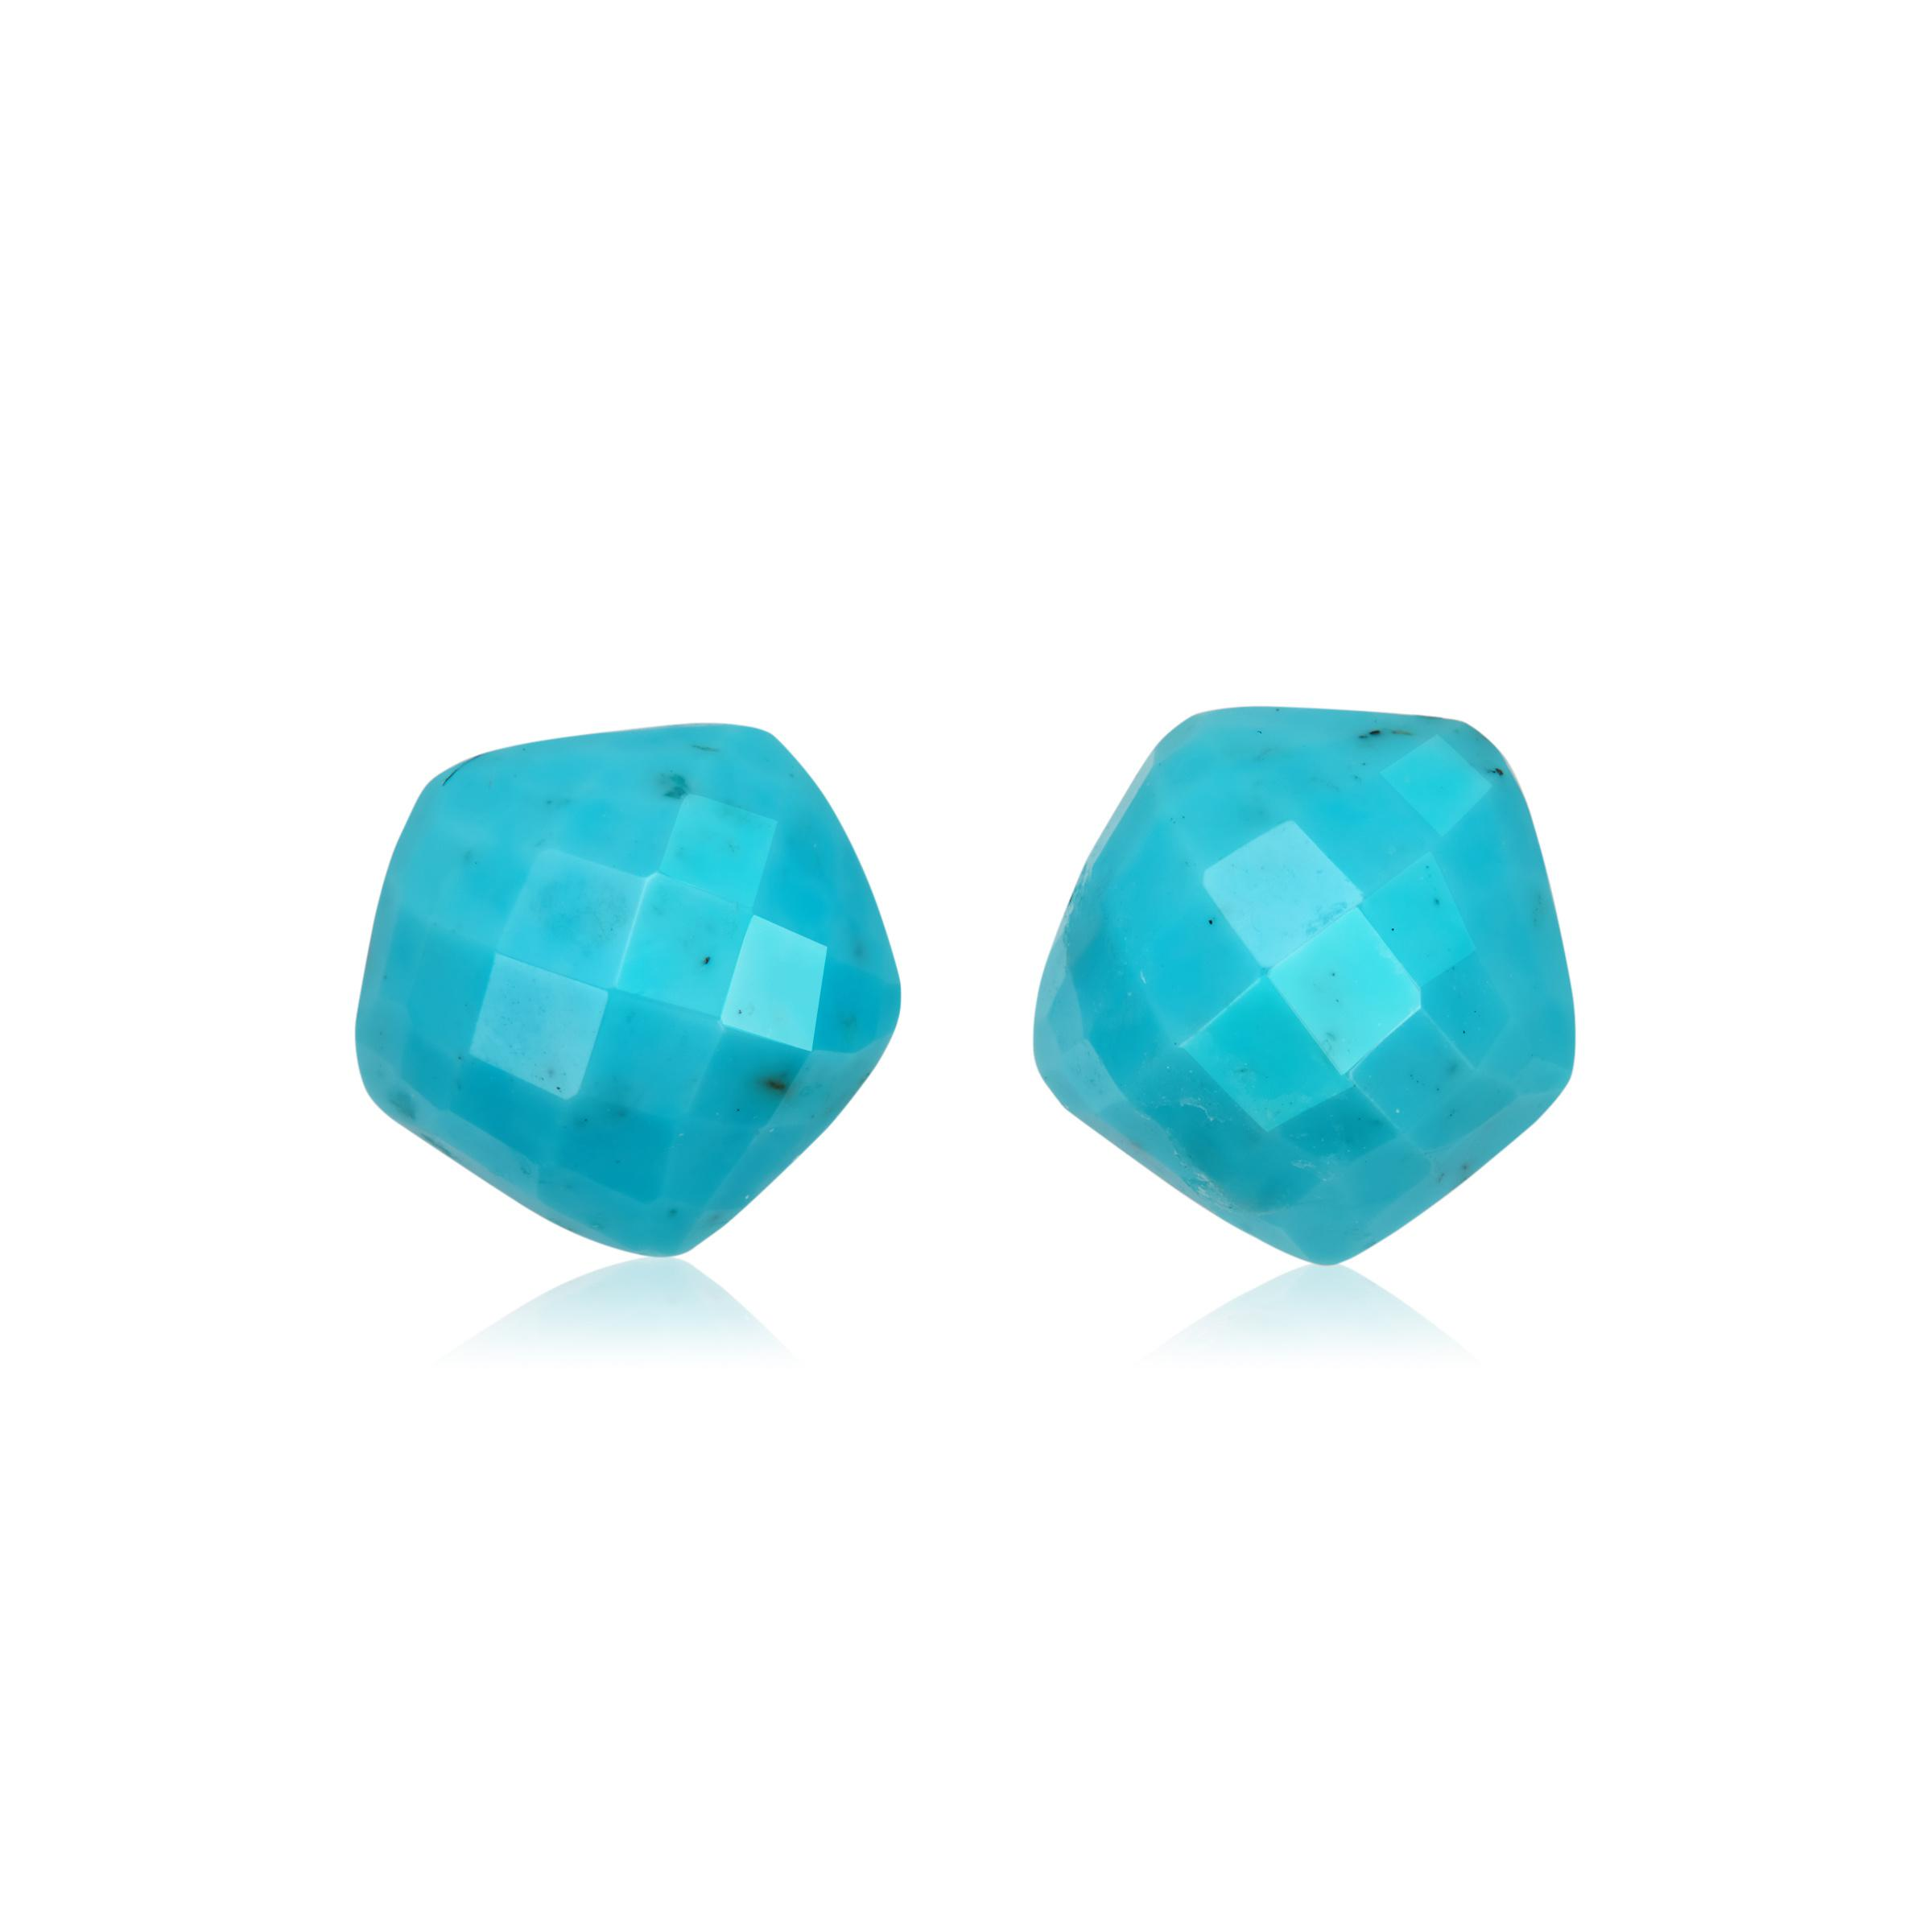 cf370d387d64f Monica Vinader Multicolor Nura Nugget Stud Earrings